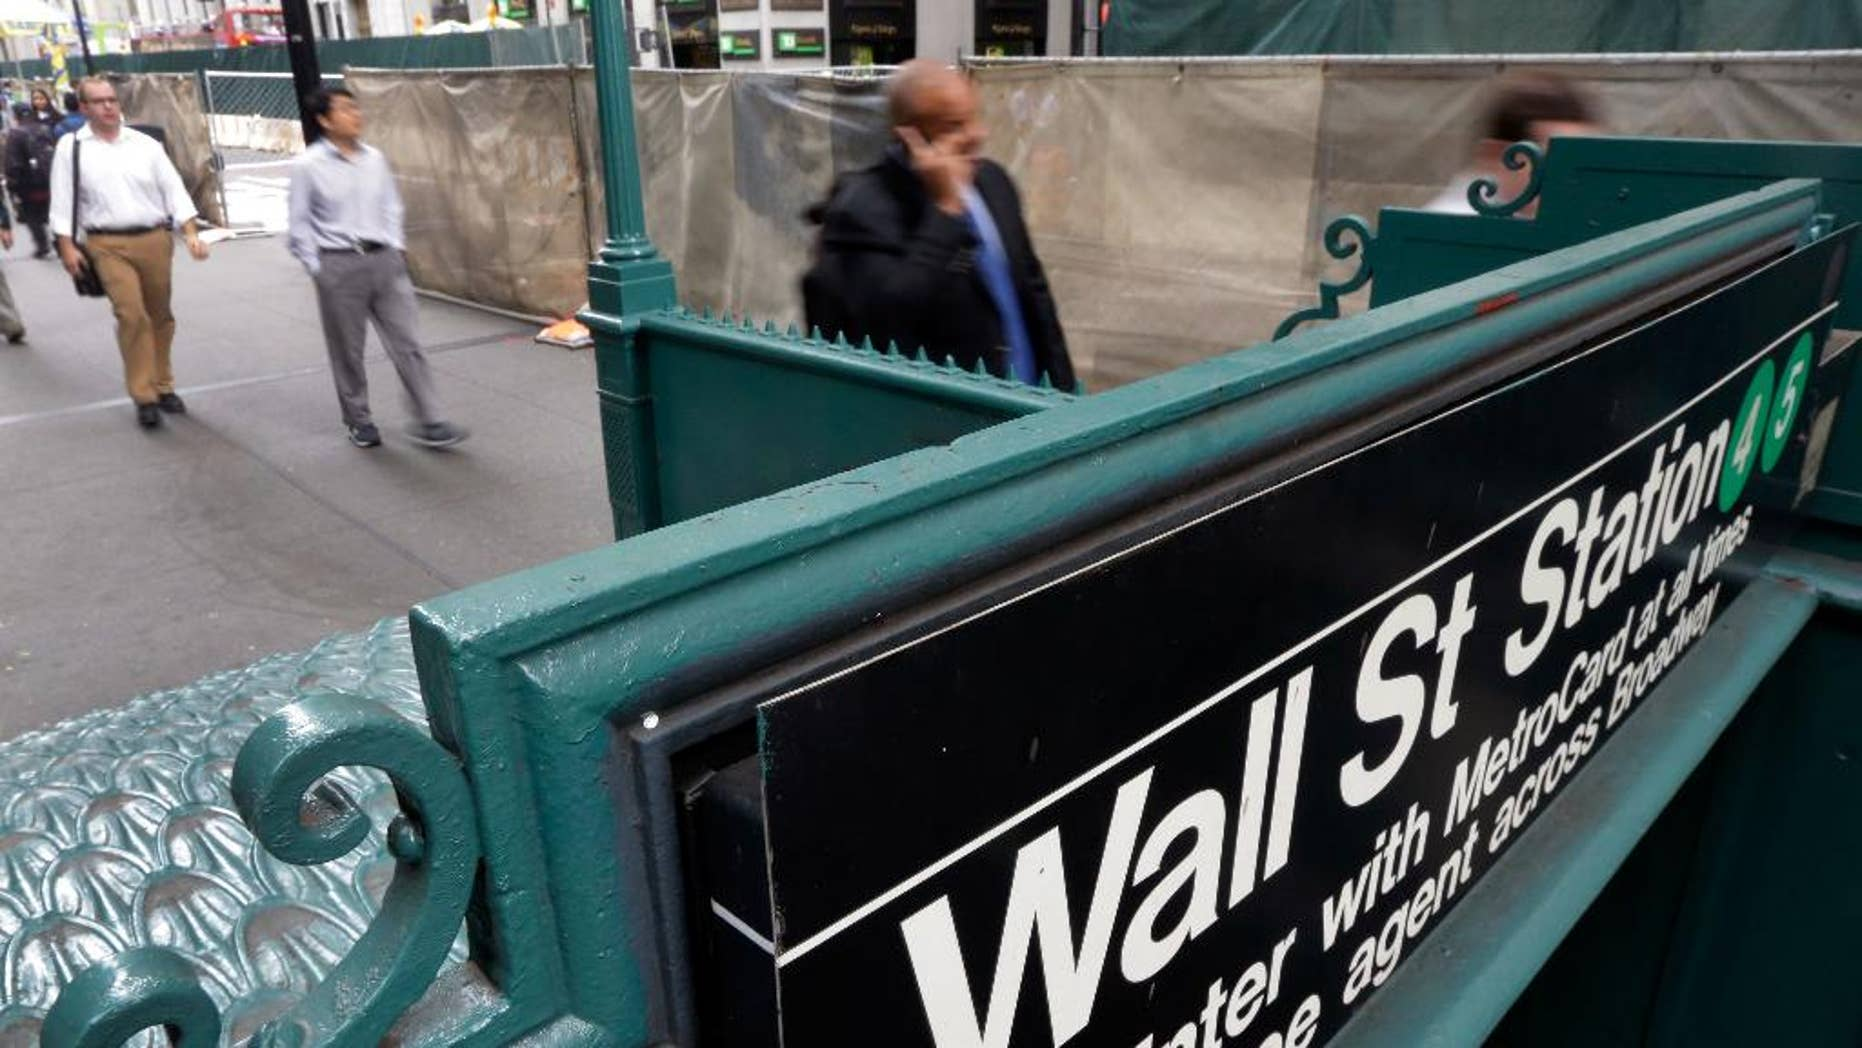 The Wall Street subway stop on Broadway, in New York's Financial District,  Thursday, Oct. 2, 2014.  U.S. financial markets surged in early trading Friday, Nov. 21, 2014 as investors cheered a surprise interest rate cut in China and a hint of further stimulus for Europe from the head of the region's central bank. The rally extended gains from a day before, pushing the major market indexes further into record territory.  (AP Photo/Richard Drew)